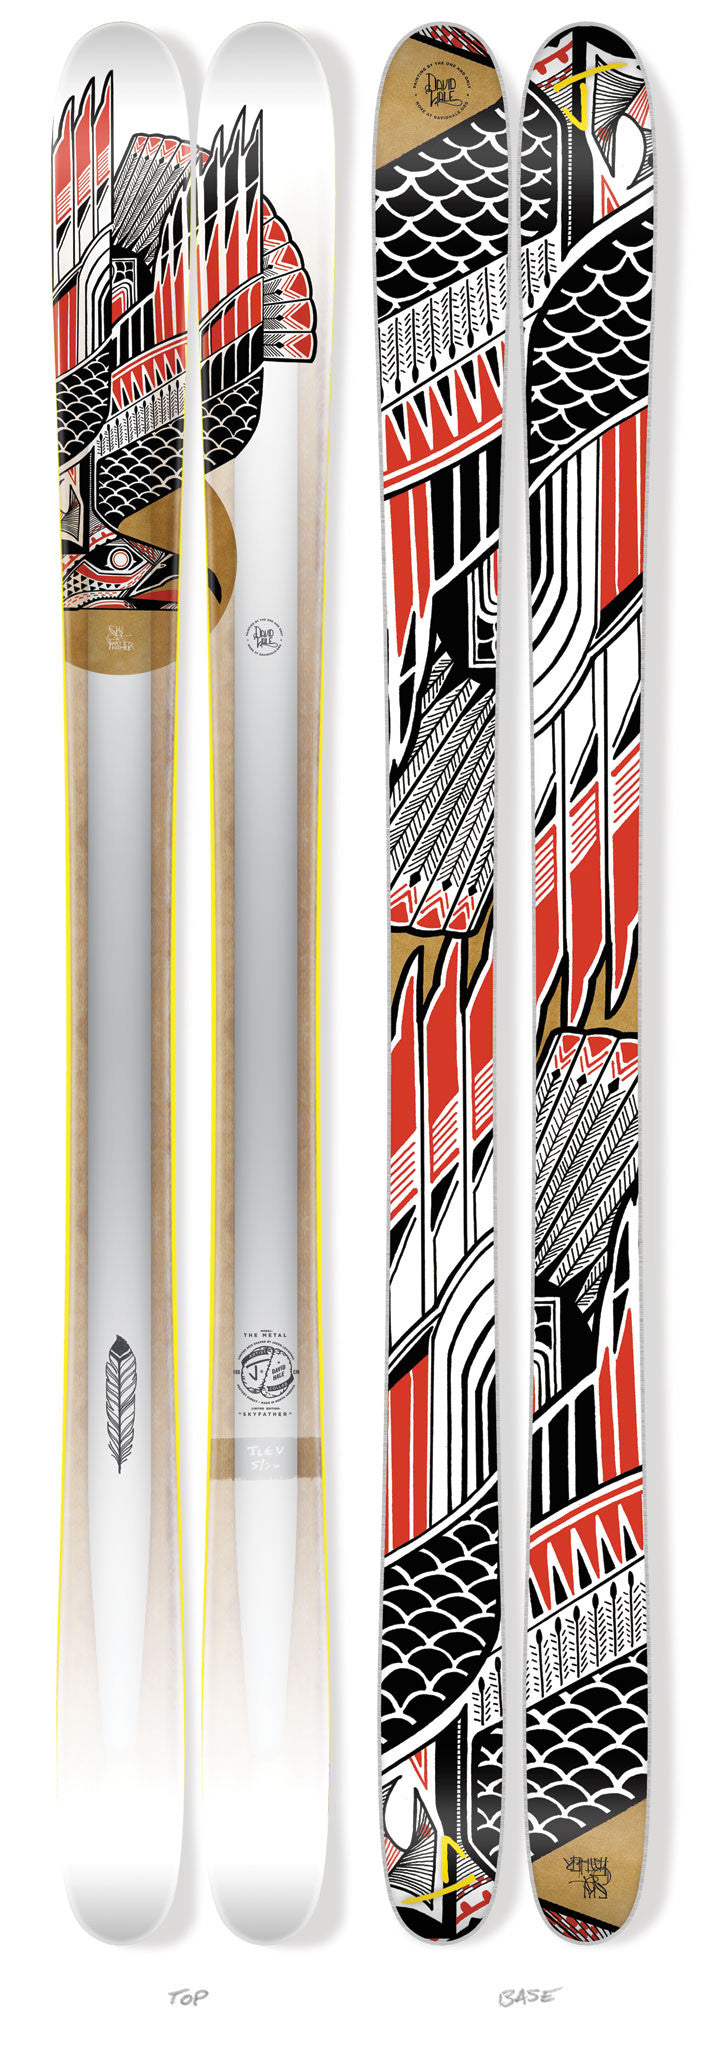 "The Metal ""SKYFATHER"" David Hale x J Collab Limited Edition Ski"